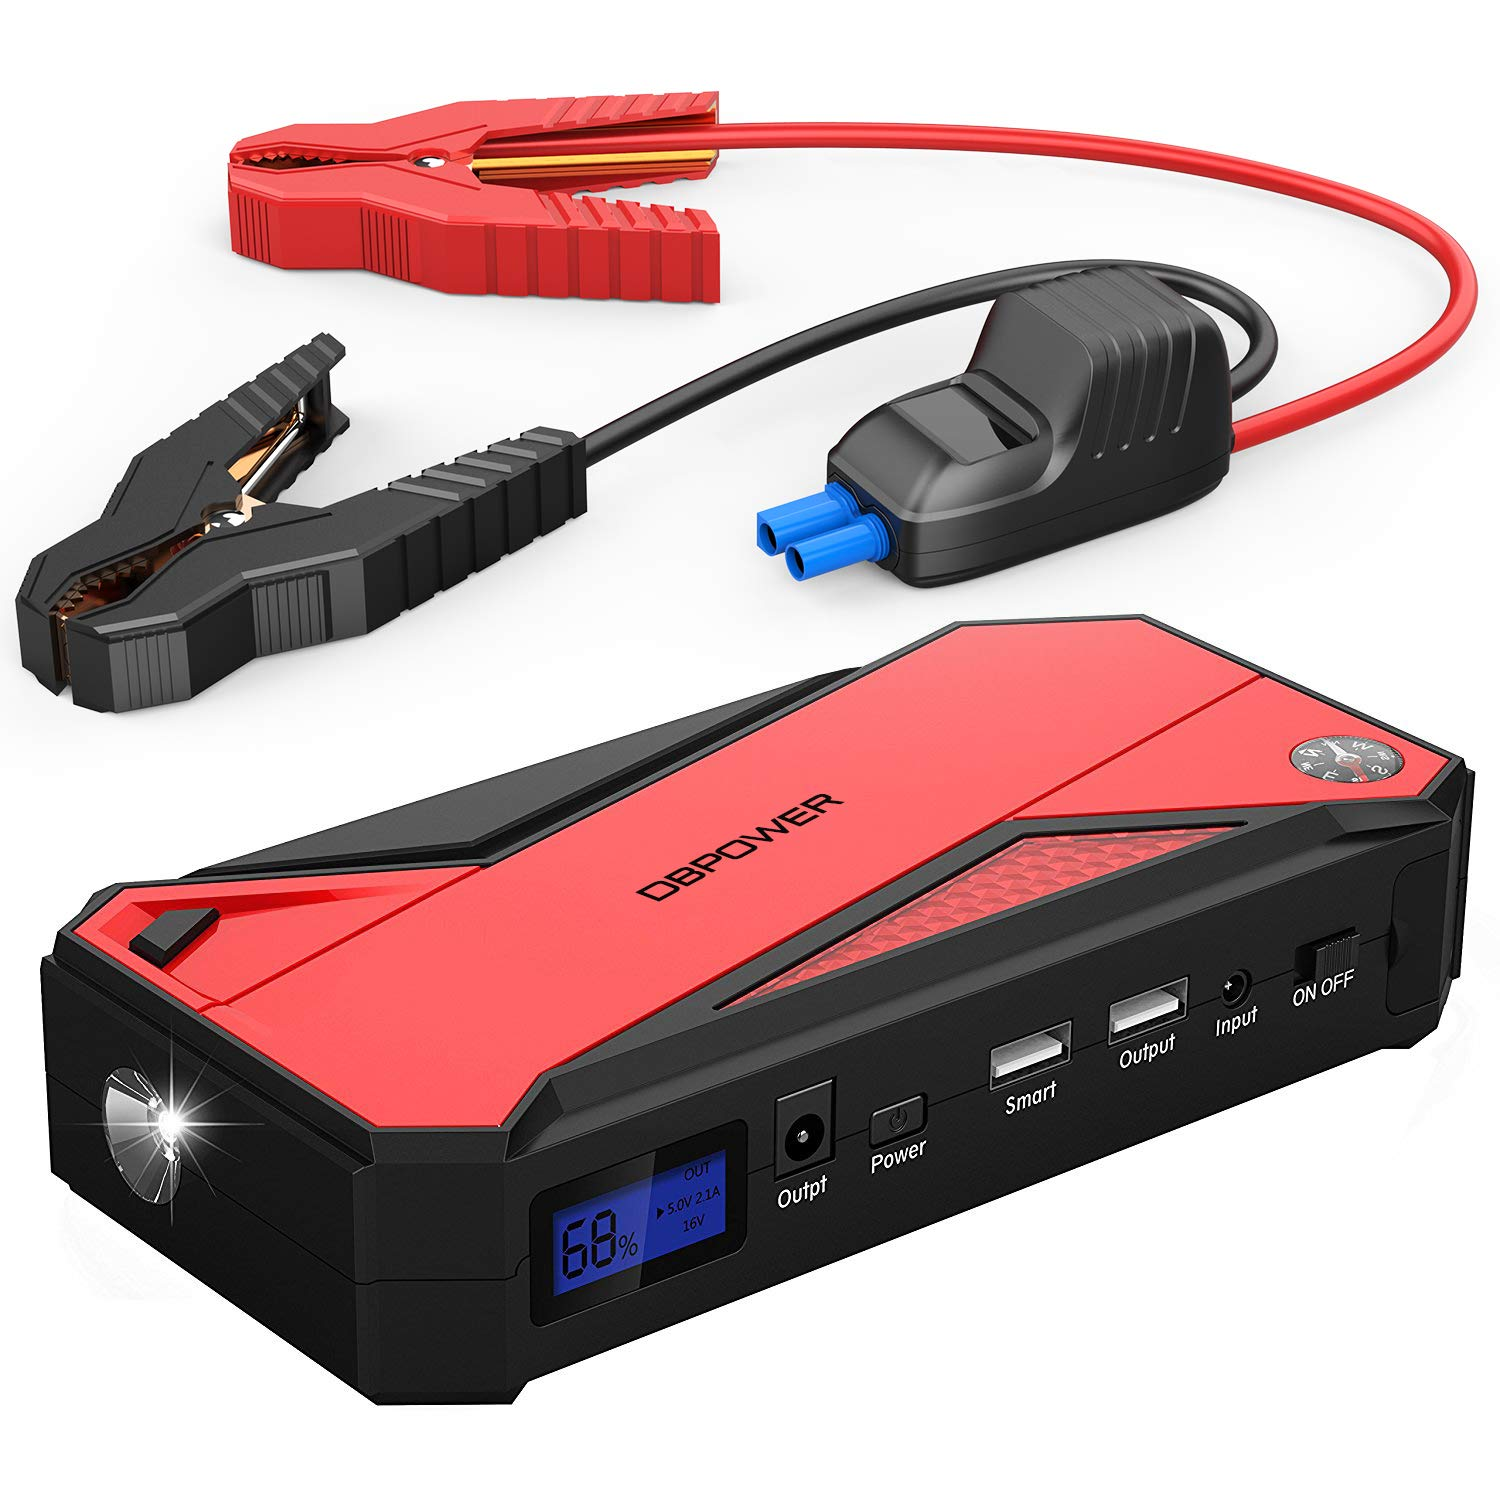 Portable Car Jump Starter >> Dbpower 600a 18000mah Portable Car Jump Starter Emergency Battery Booster Pack With Dual Usb Charging Outputs Led Flashlight And Compass